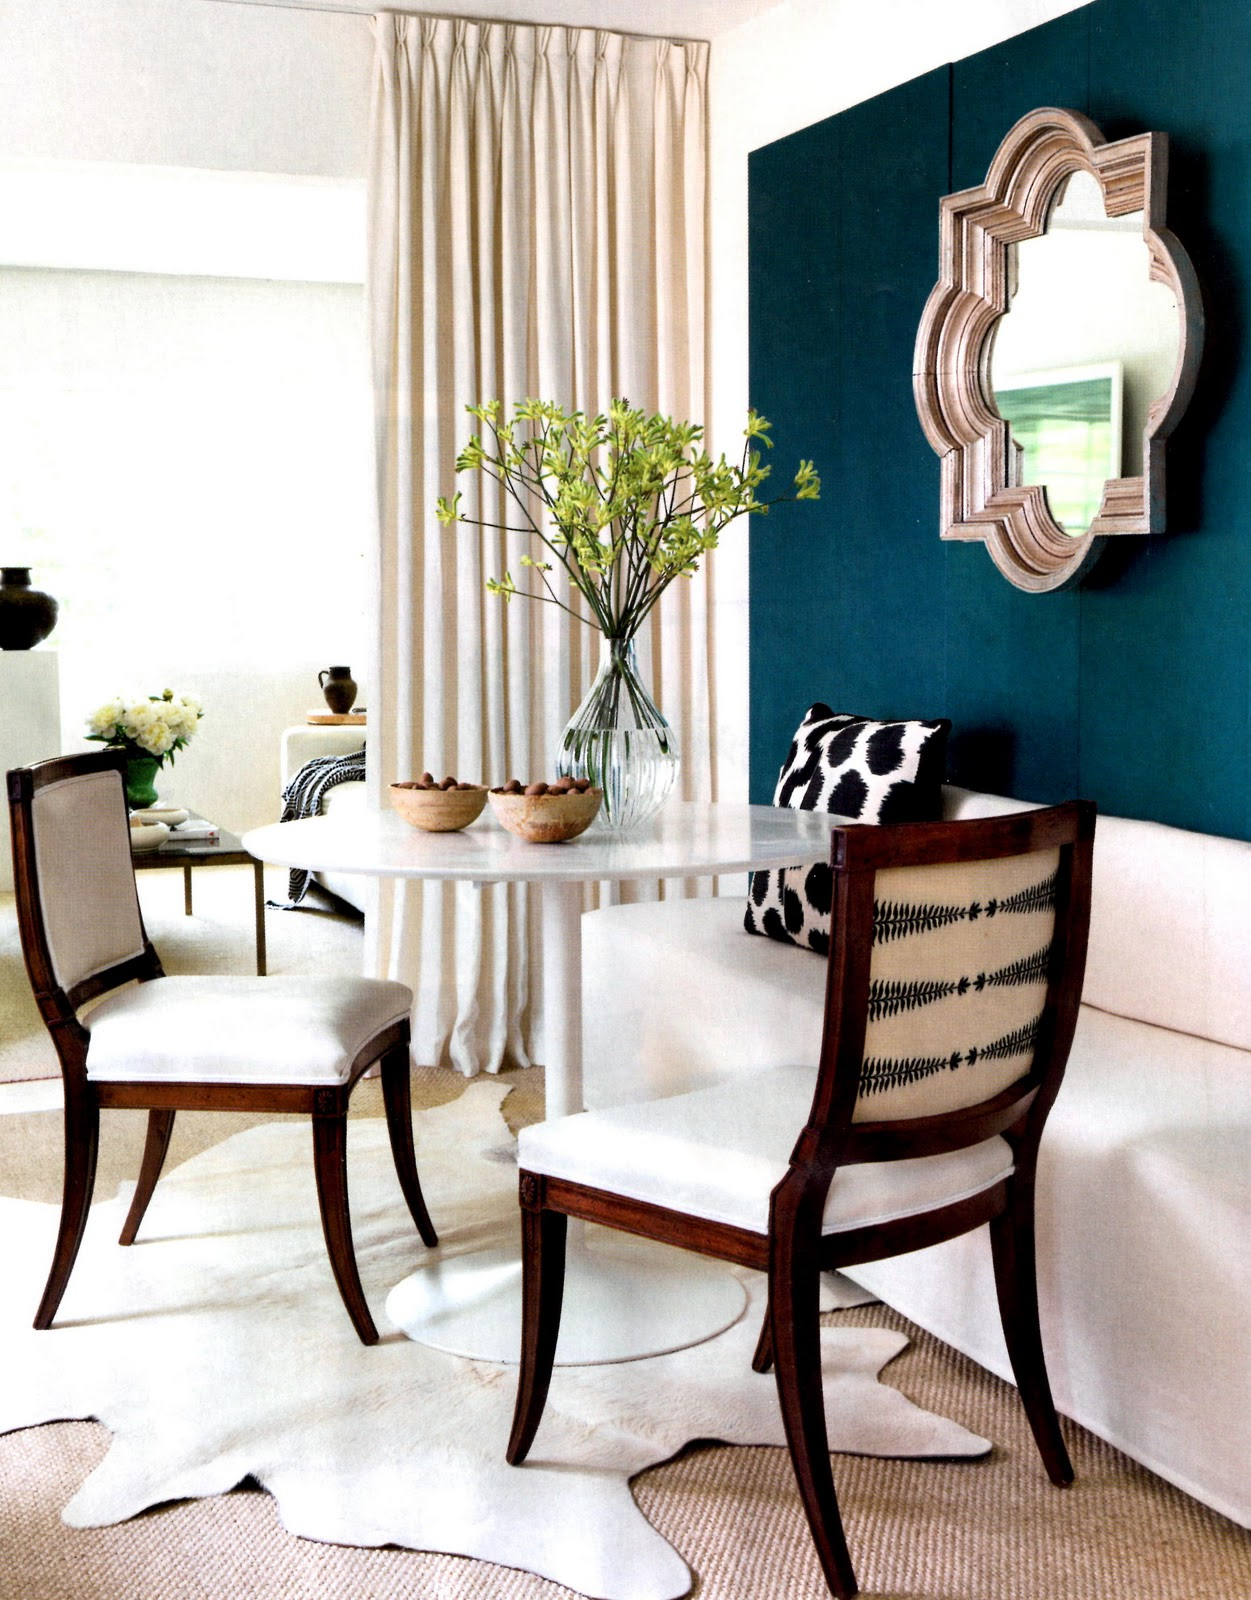 lindsey bond turquoise wall with a quatrefoil mirror and tulip table